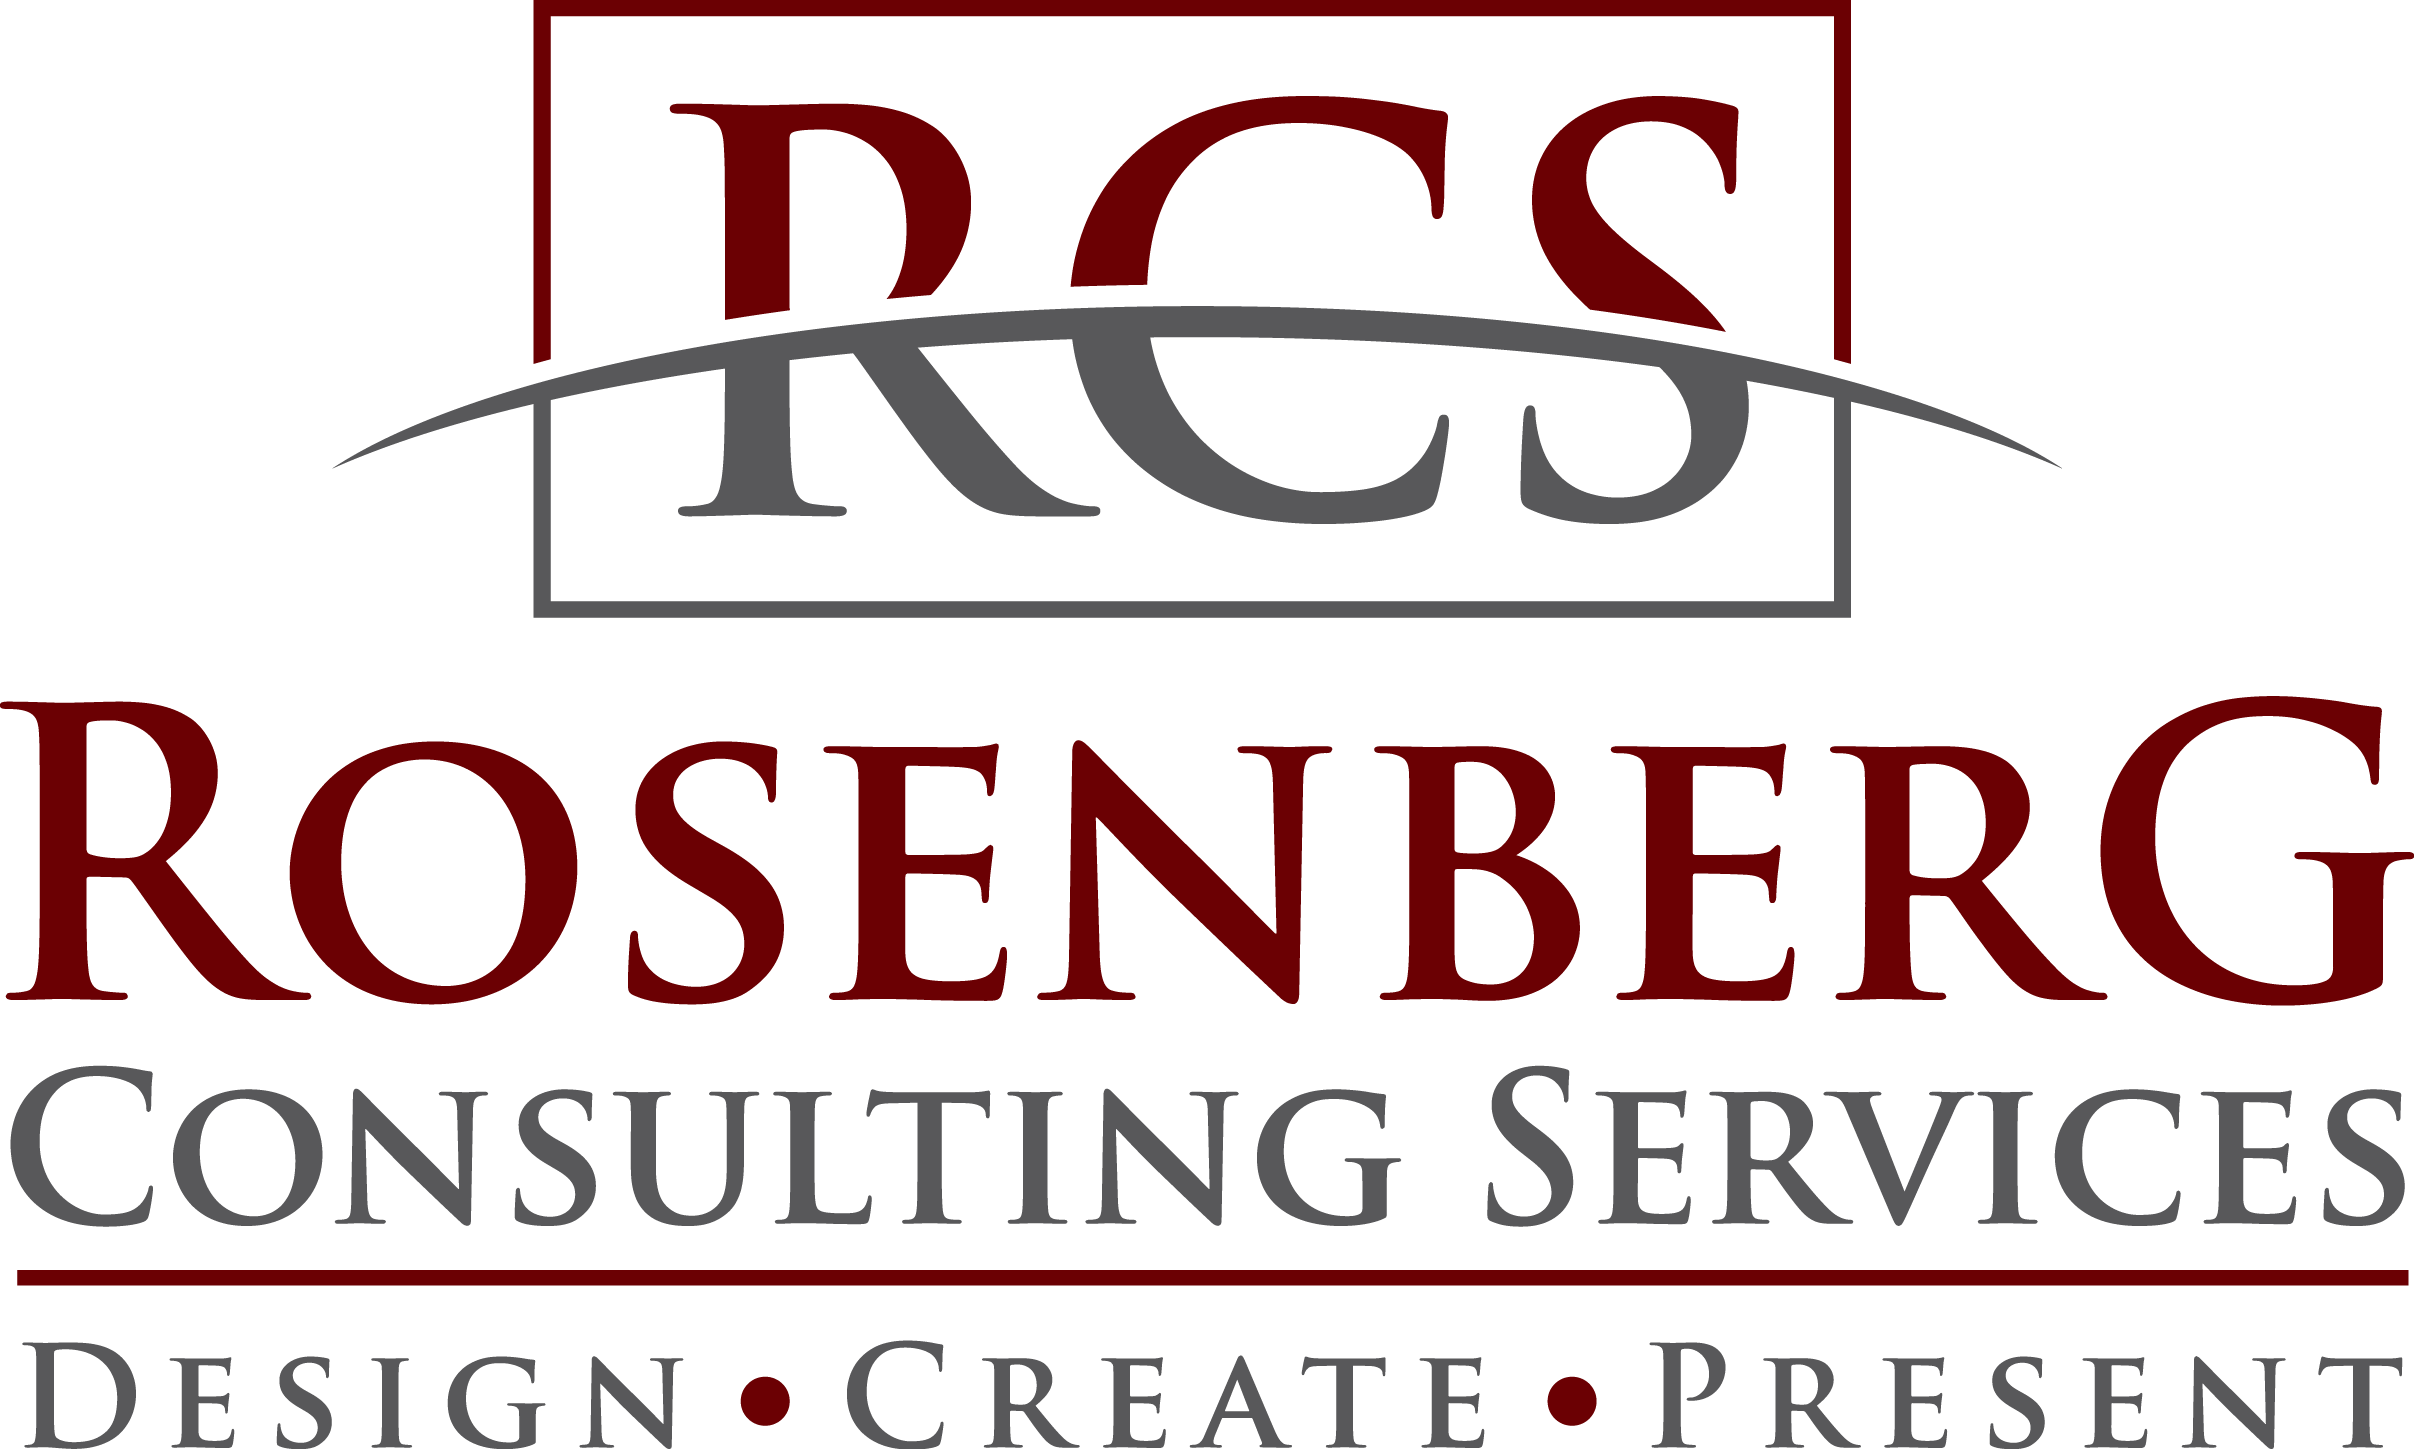 Rosenberg Consulting Services